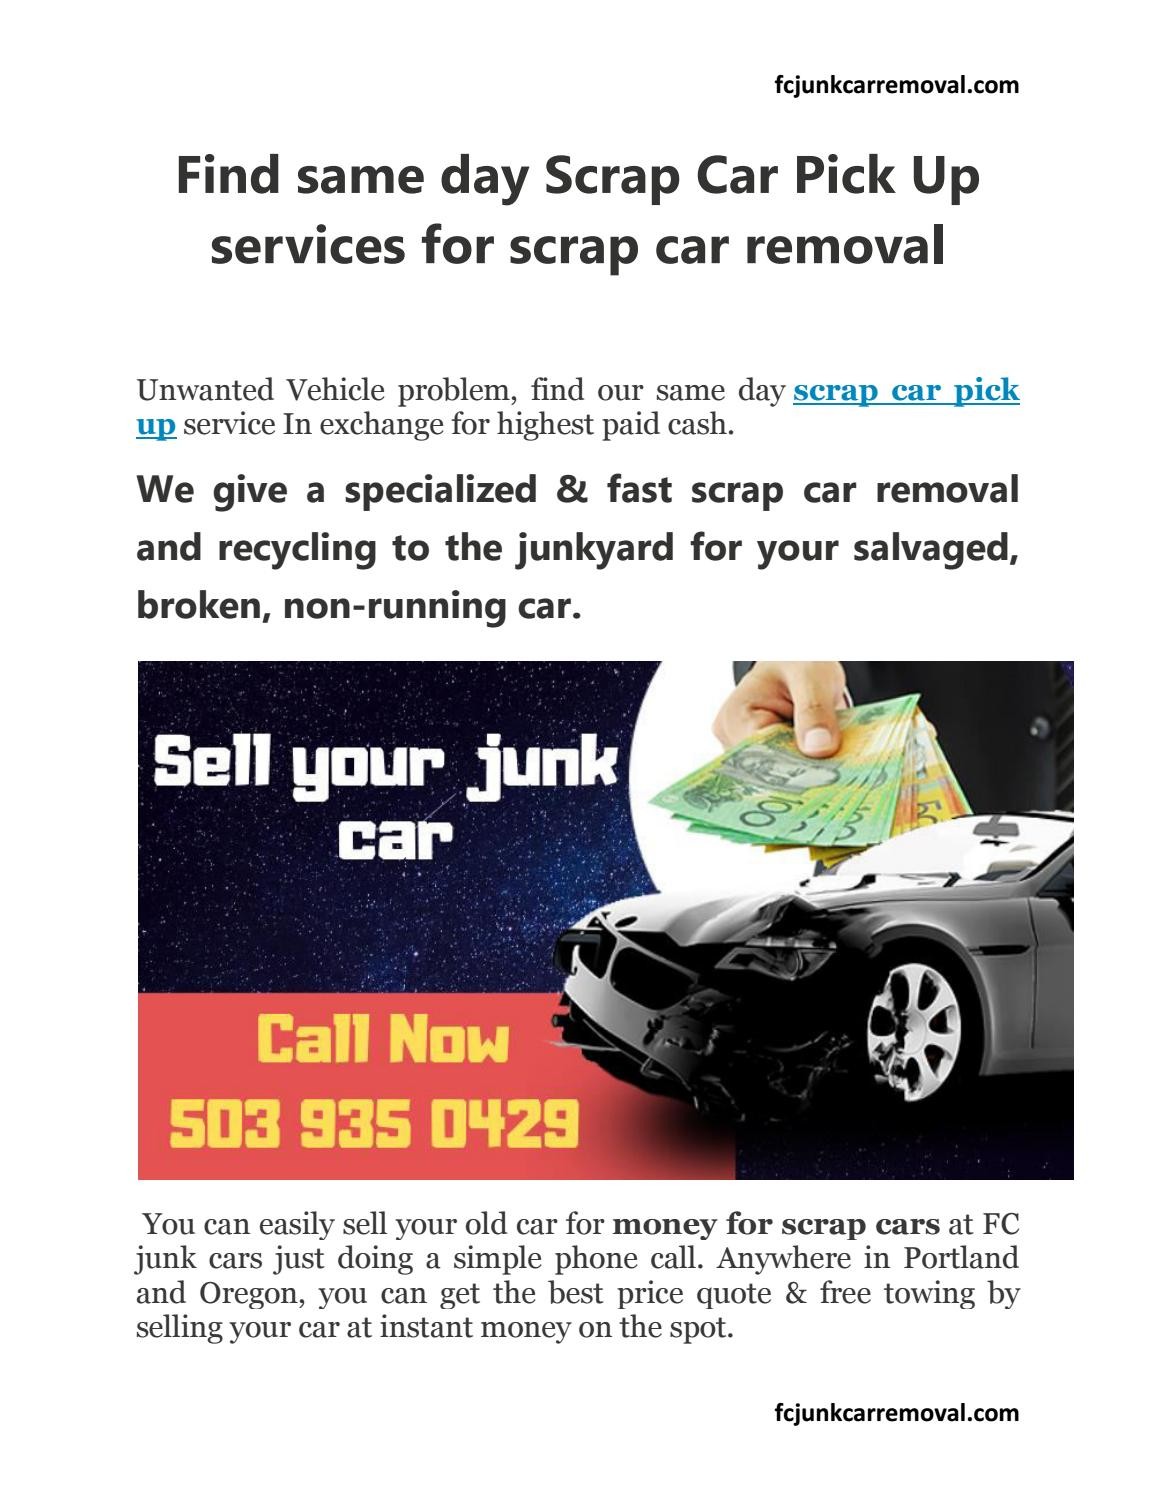 Highest Paying For Junk Cars >> Find Same Day Scrap Car Pick Up Services For Scrap Car